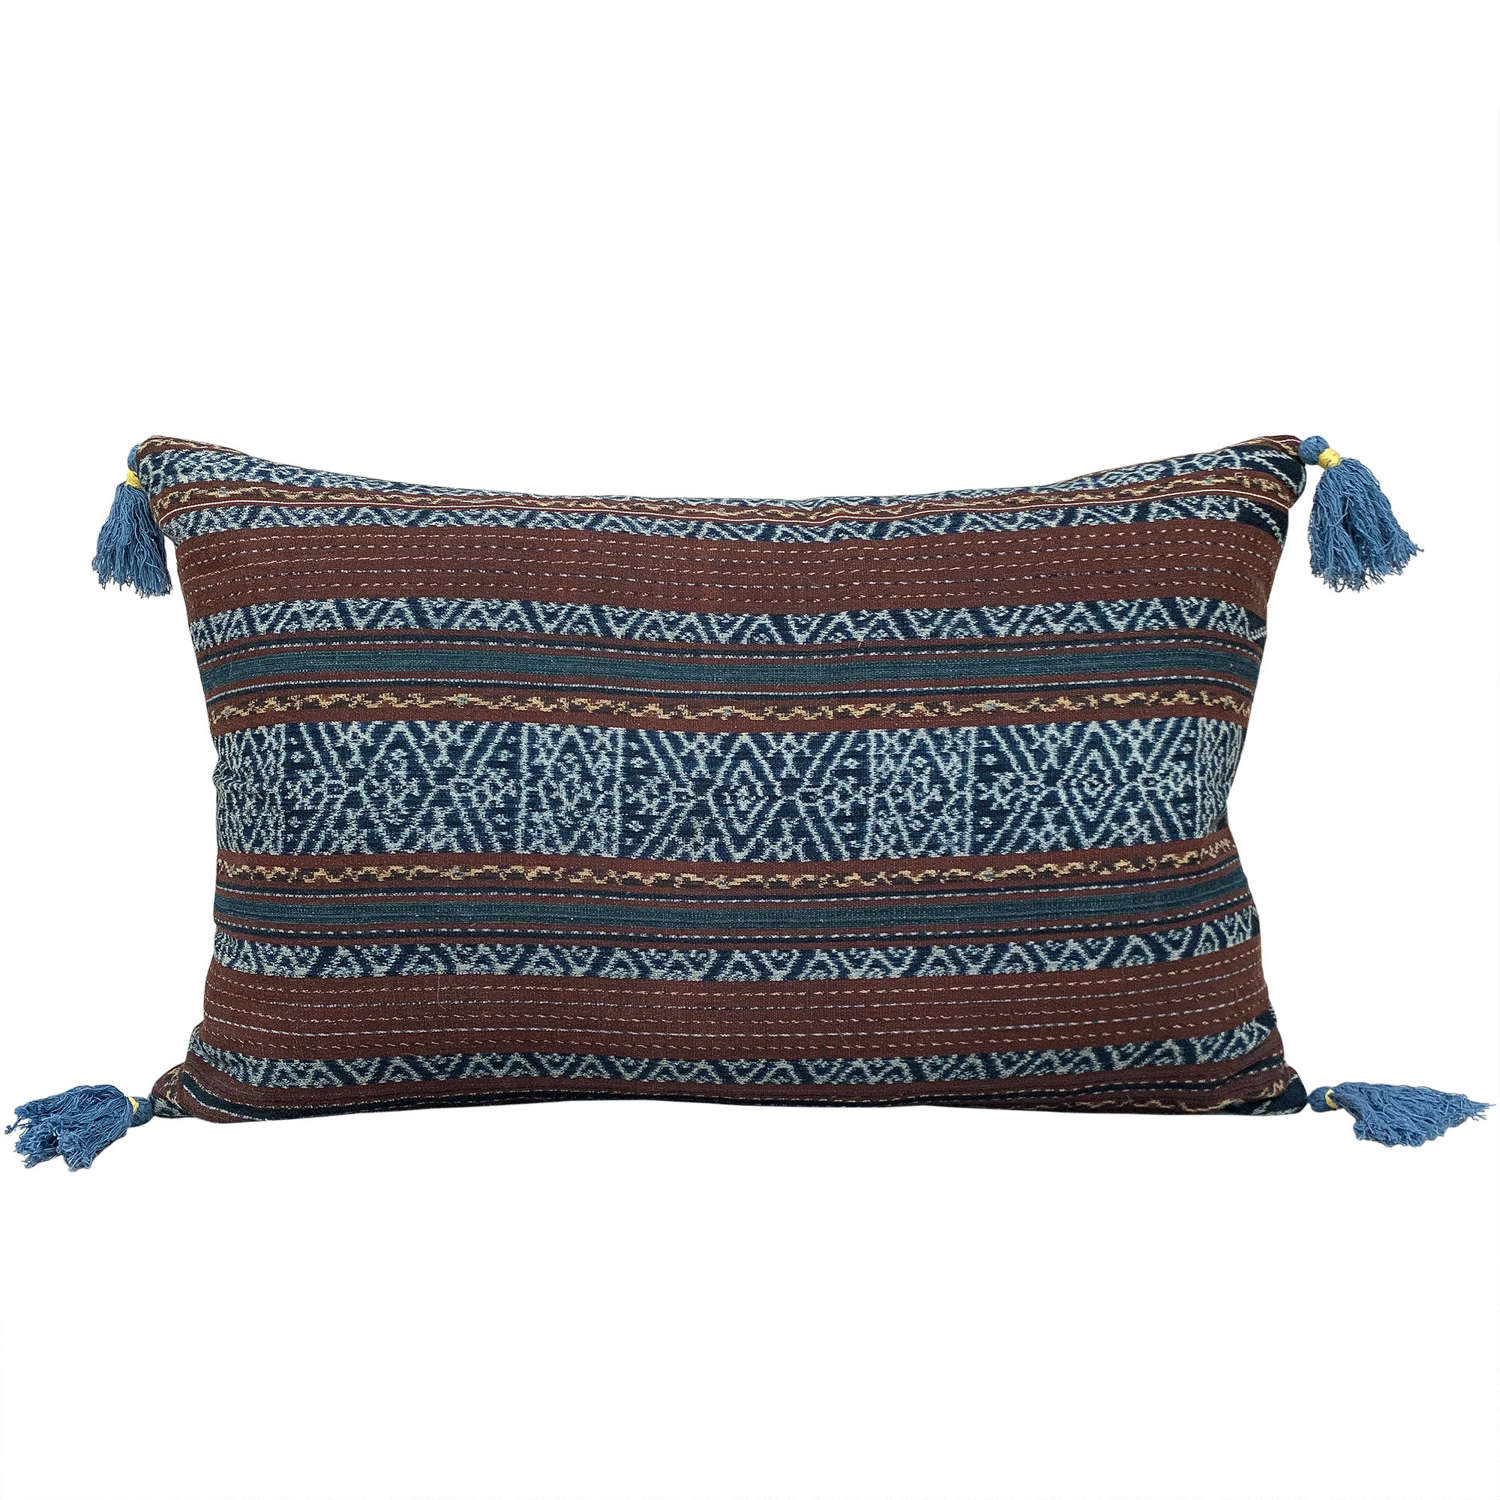 Ikat Cushions with Blue Tassels